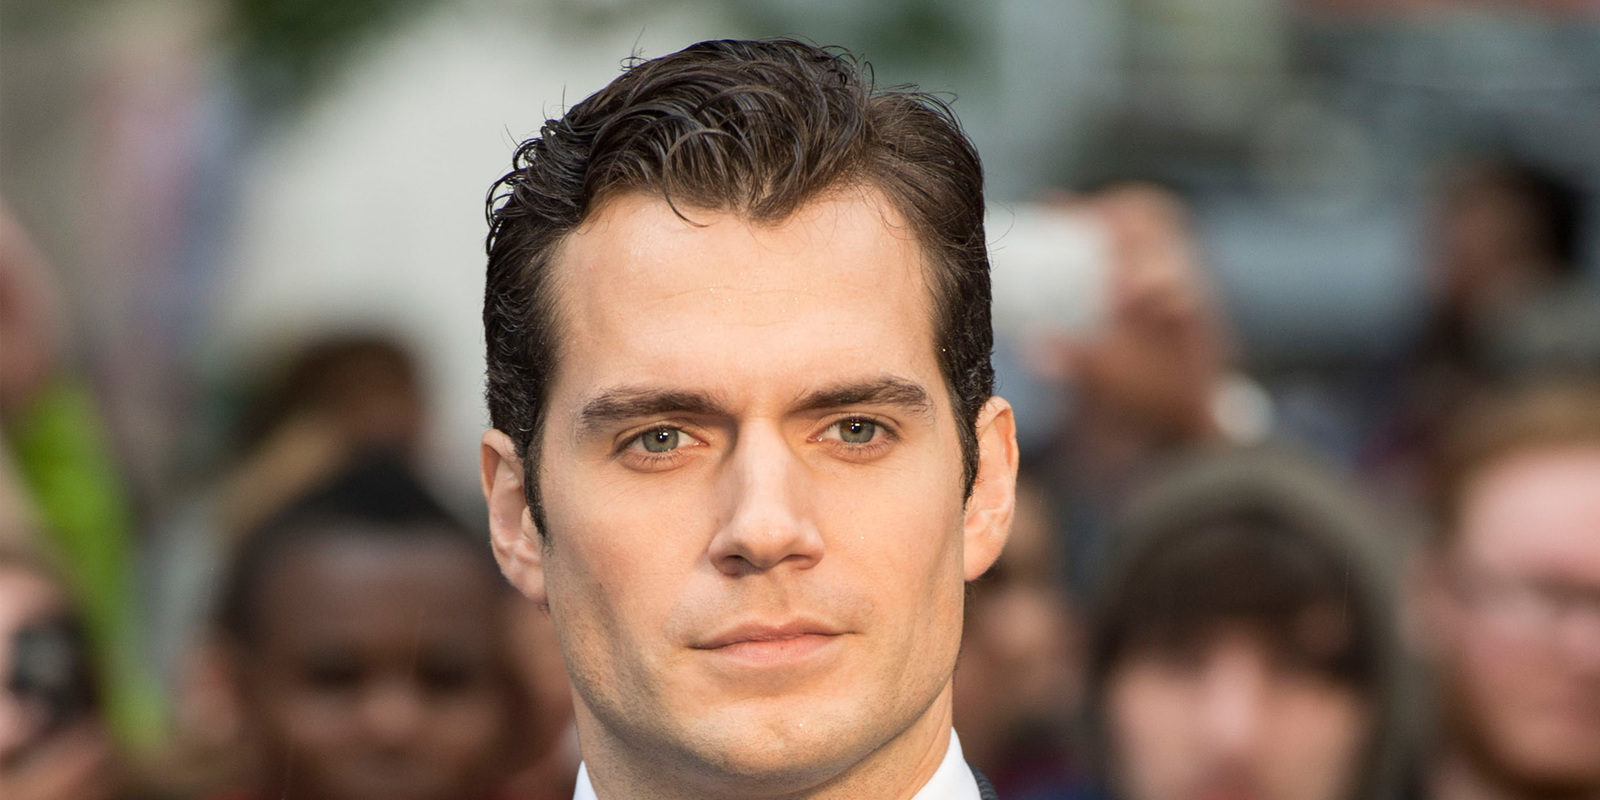 43 Henry Man Of Steels Henry Cavill Joins Cast Of Mission Impossible 6